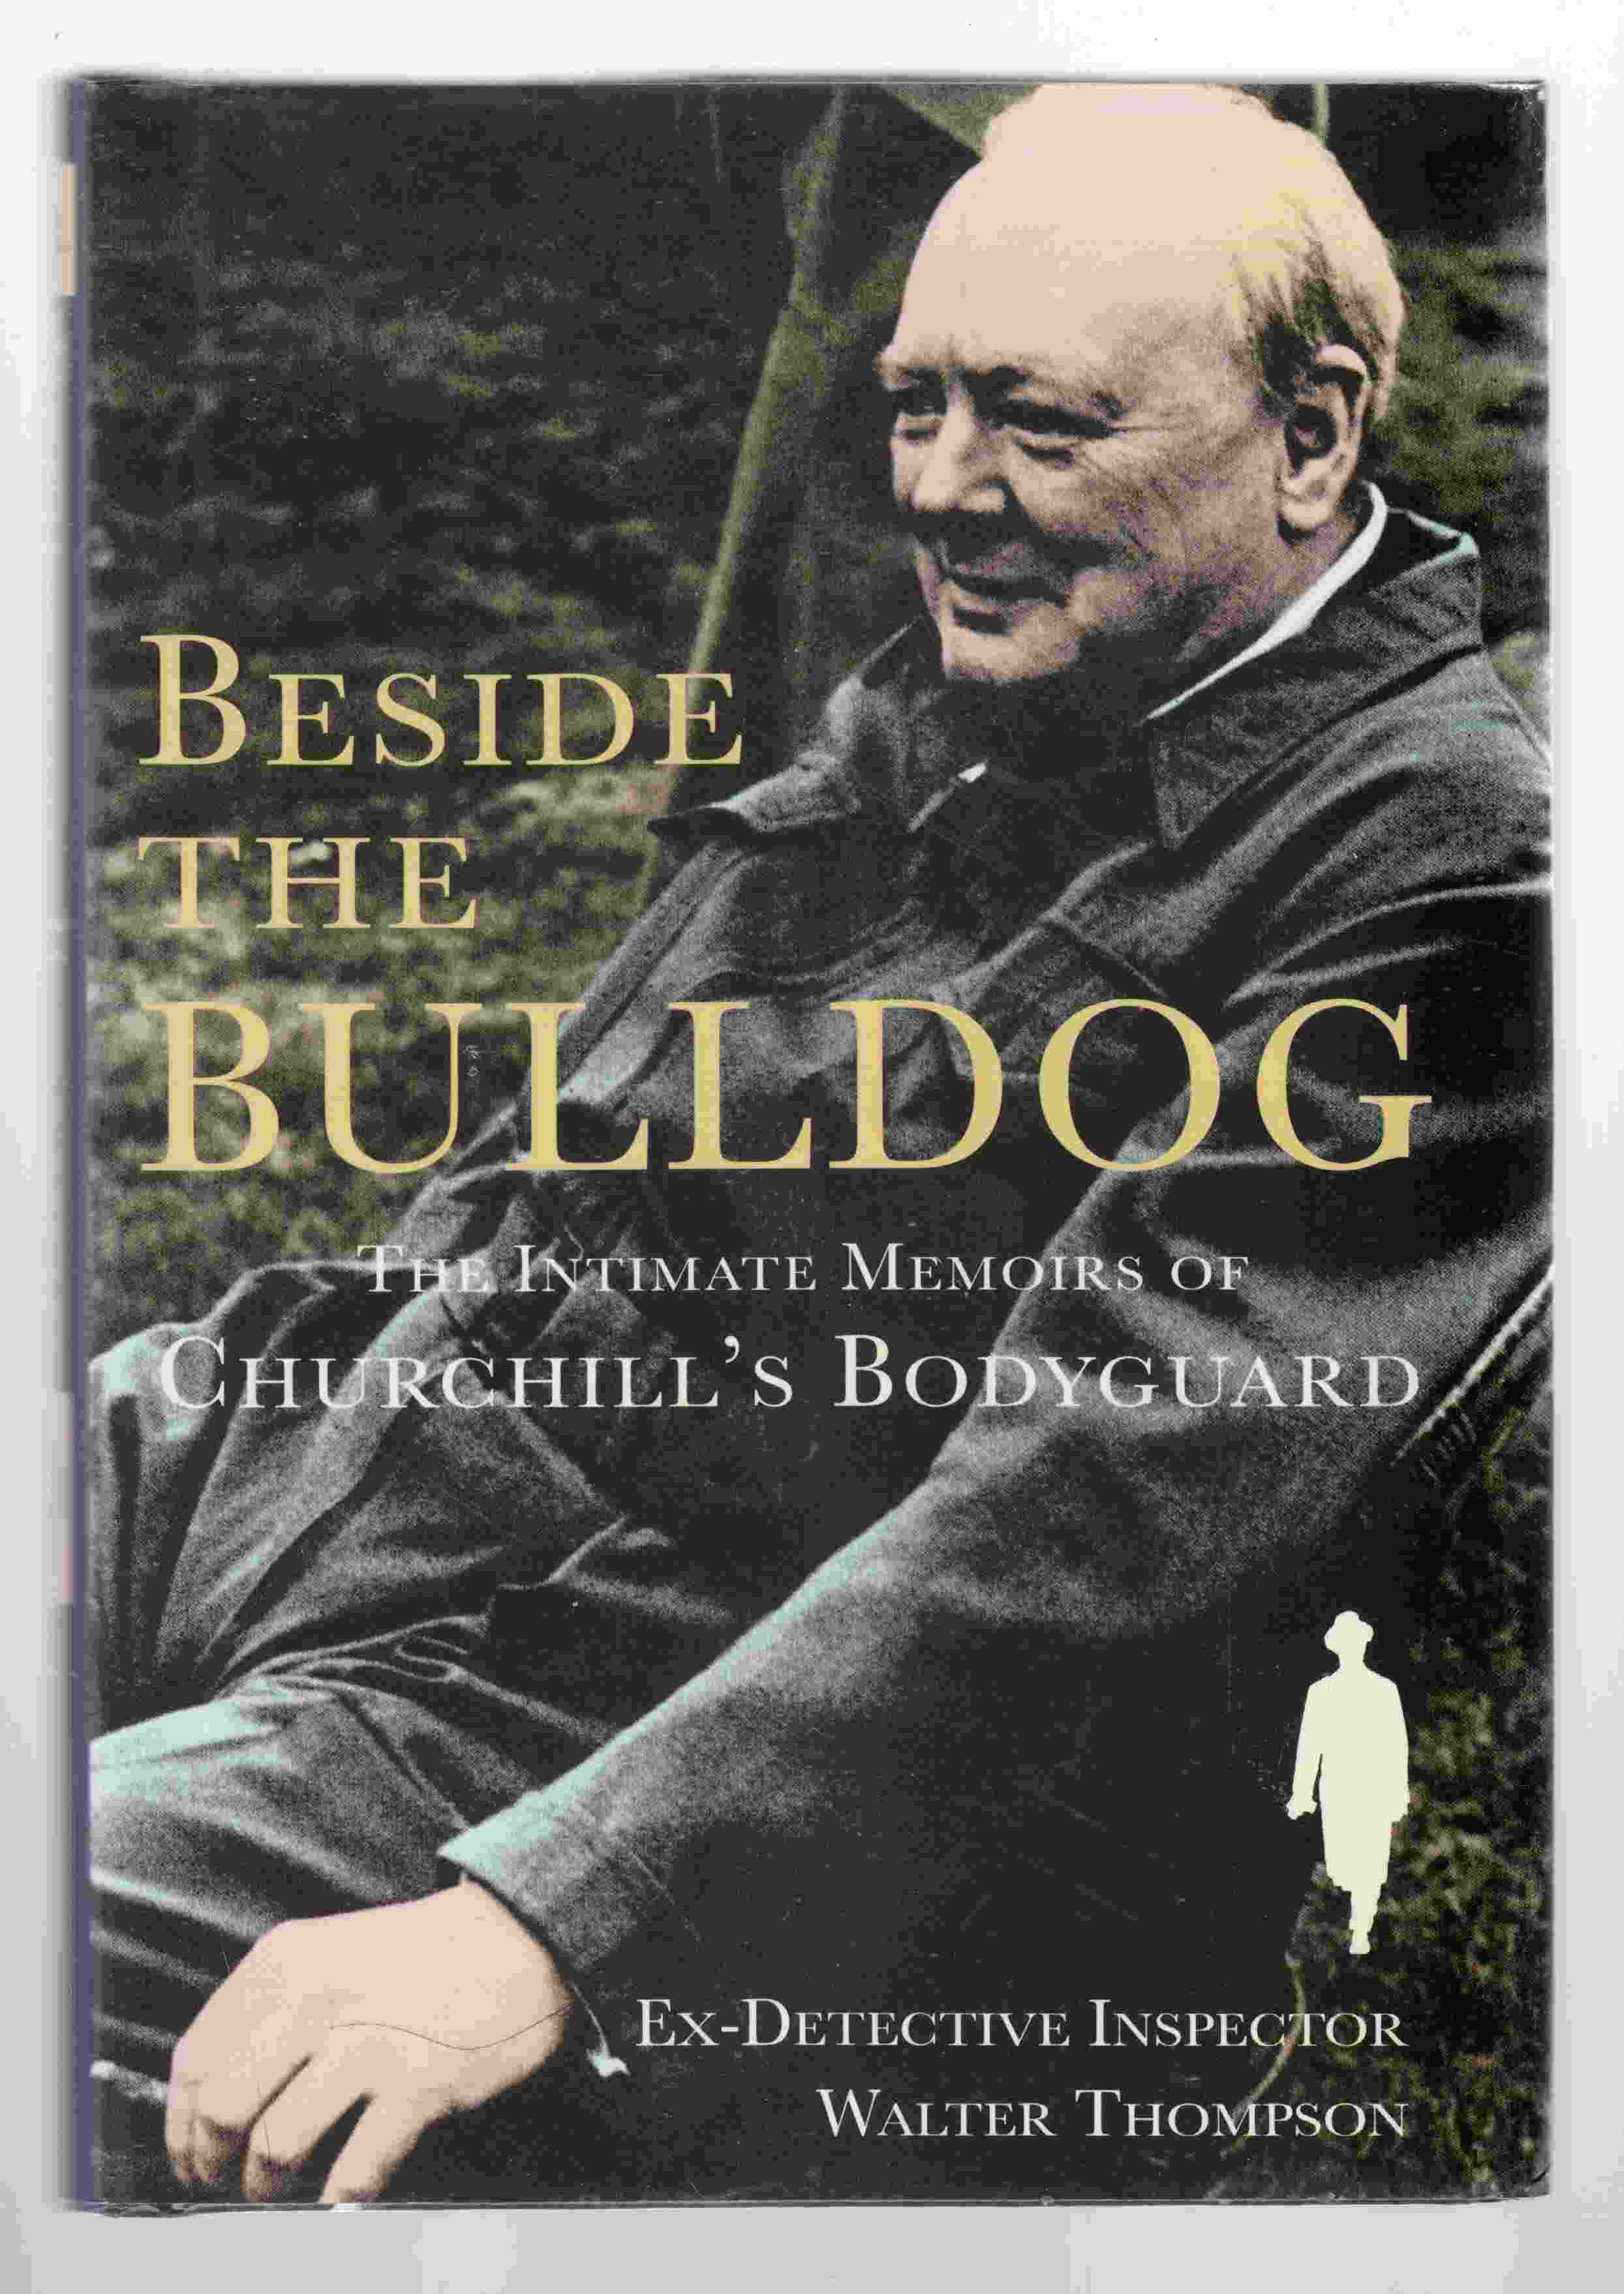 Image for Beside the Bulldog The Intimate Memories of Churchill's Bodyguard